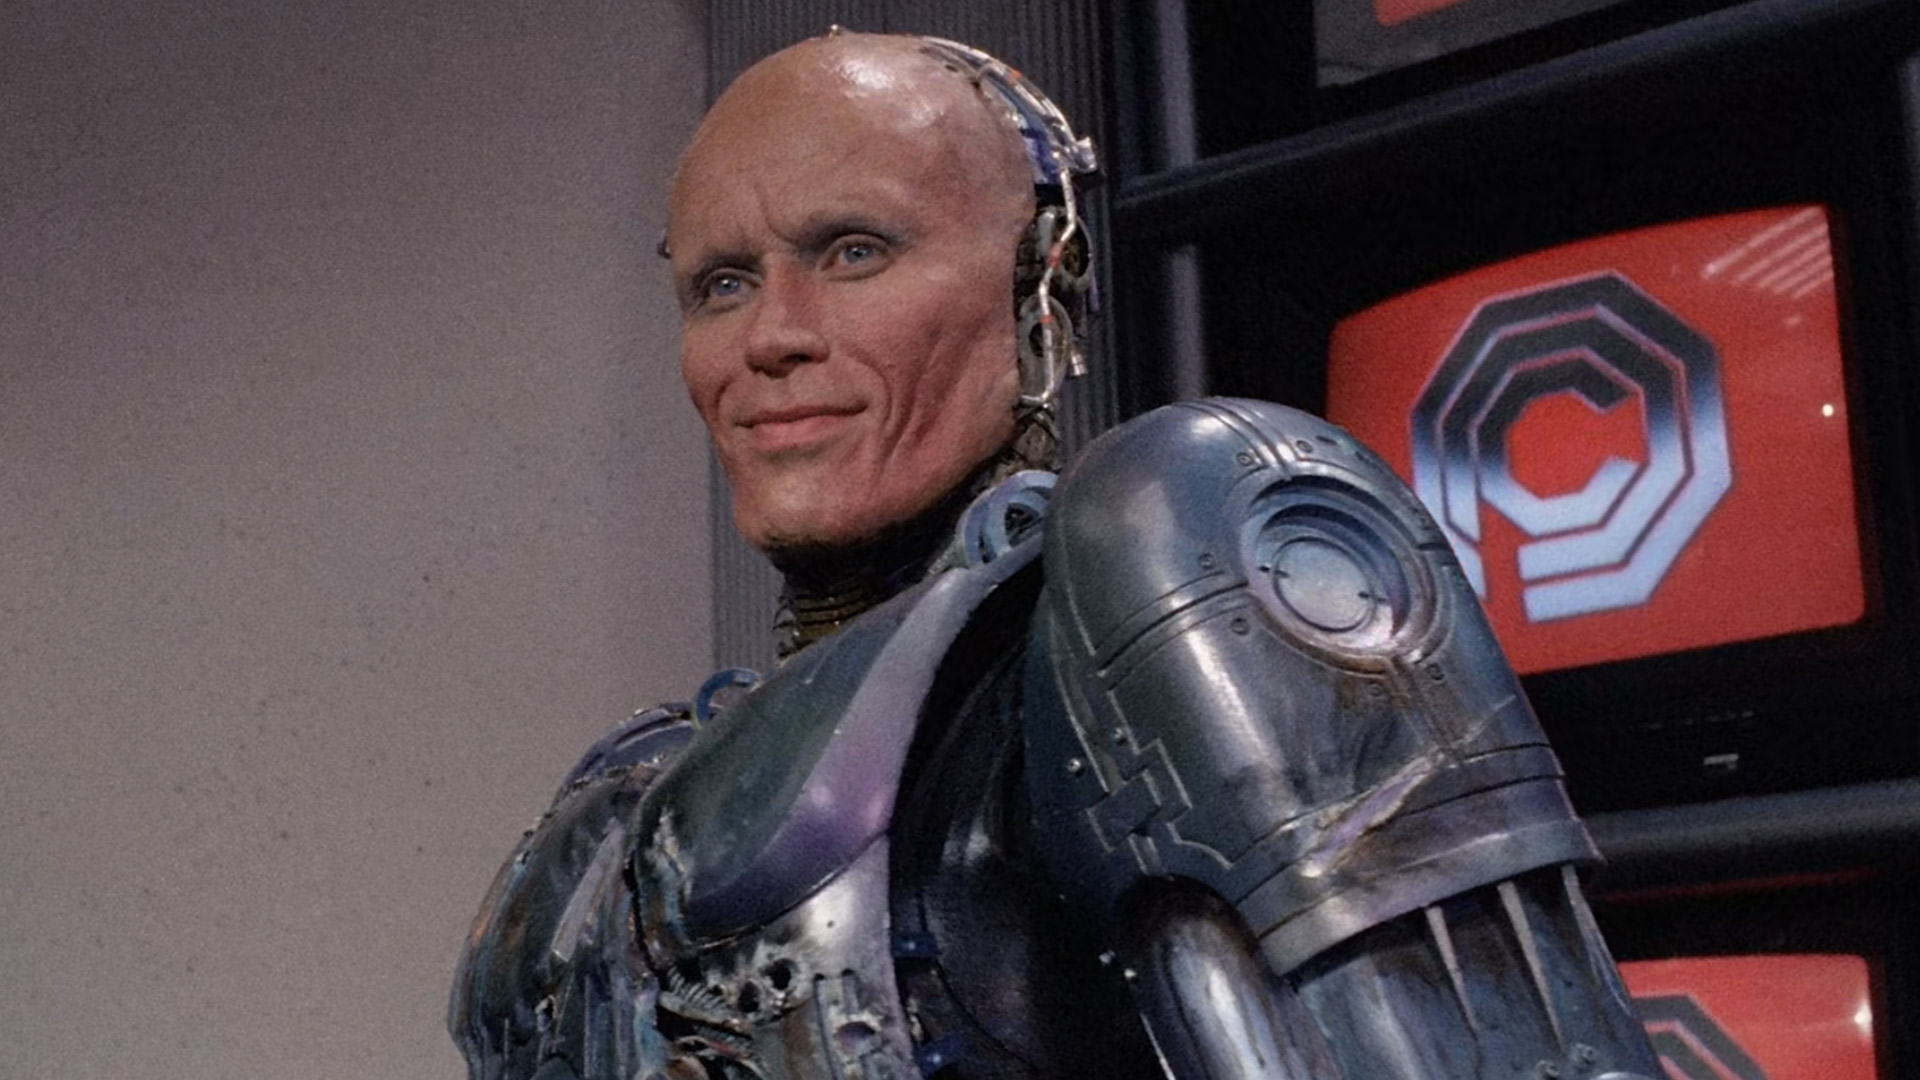 Movie Time! Part Man, Part Machine, All Awesome: RoboCop (1987)